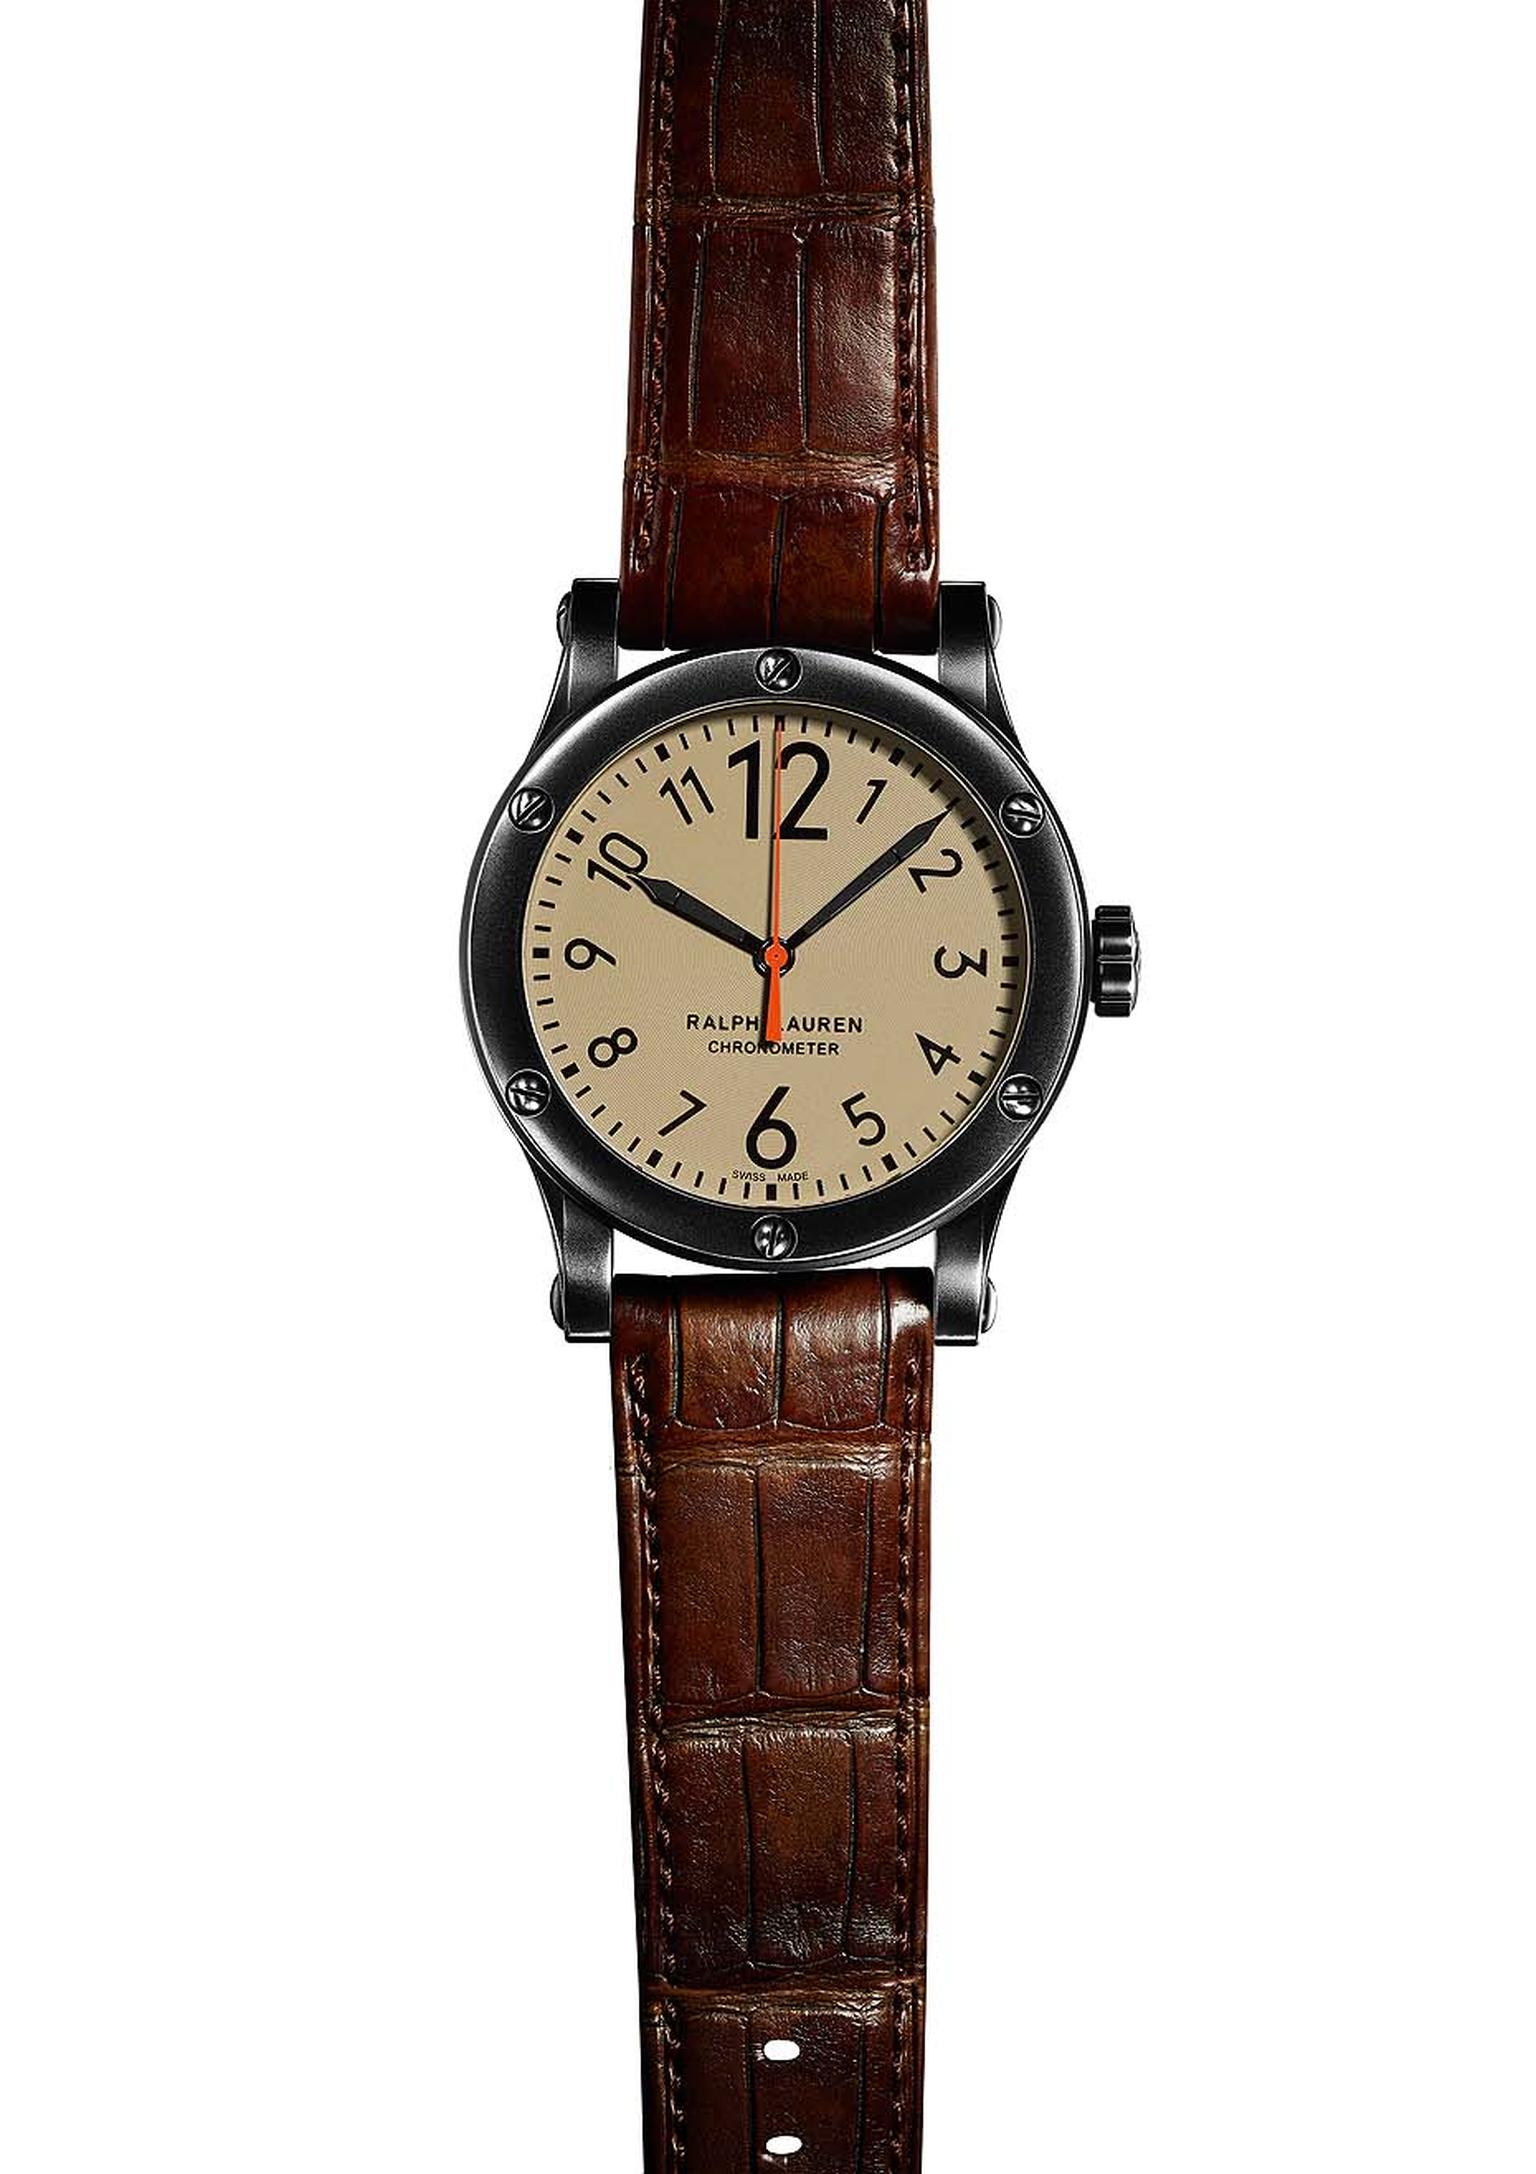 Ralph Lauren watches Safari Chronometer has been kitted out with a khaki-coloured dial and is presented in a 39 or 45mm stainless steel case with a blackened finish.